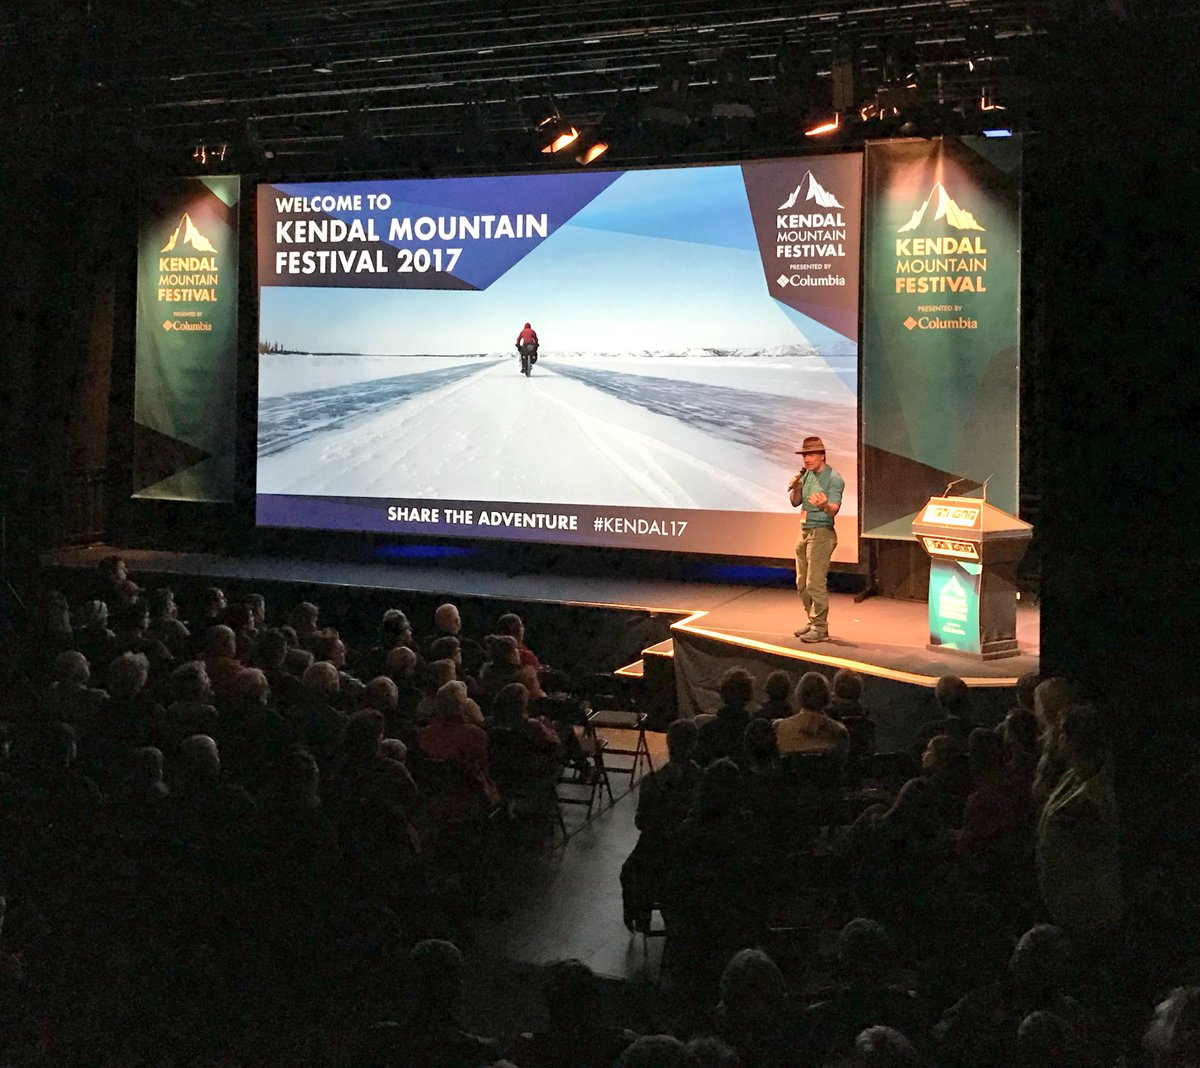 Outstanding opening session for @kendalmountain with @andypmtnguide and the #kendal17 team.  #Weightless featuring #JBChandelier is a total #parapente inspiration! Now @inov_8 #FellRunning session!  #paraglide #kendal #wearekendal #gatewaytothelakes  #notjustlakes<br>http://pic.twitter.com/lVlh2a57jG &ndash; à Brewery Arts Centre